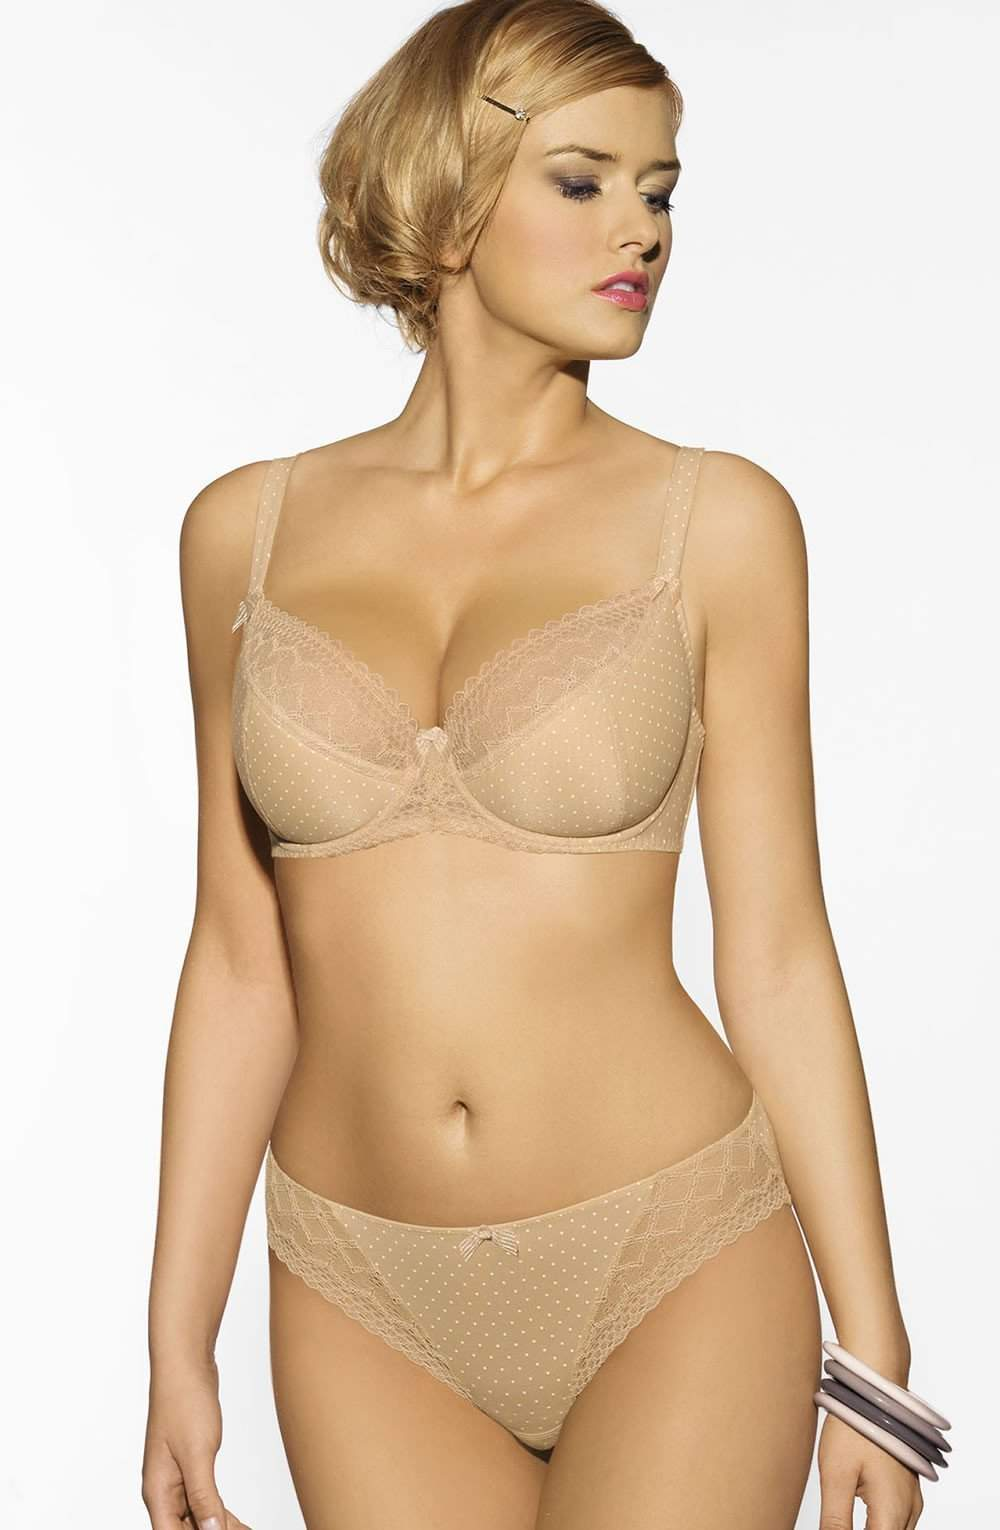 Beverly Full Cup Underwire Bra in Skin by Corin - Corin - Katys Boutique Lingerie USA